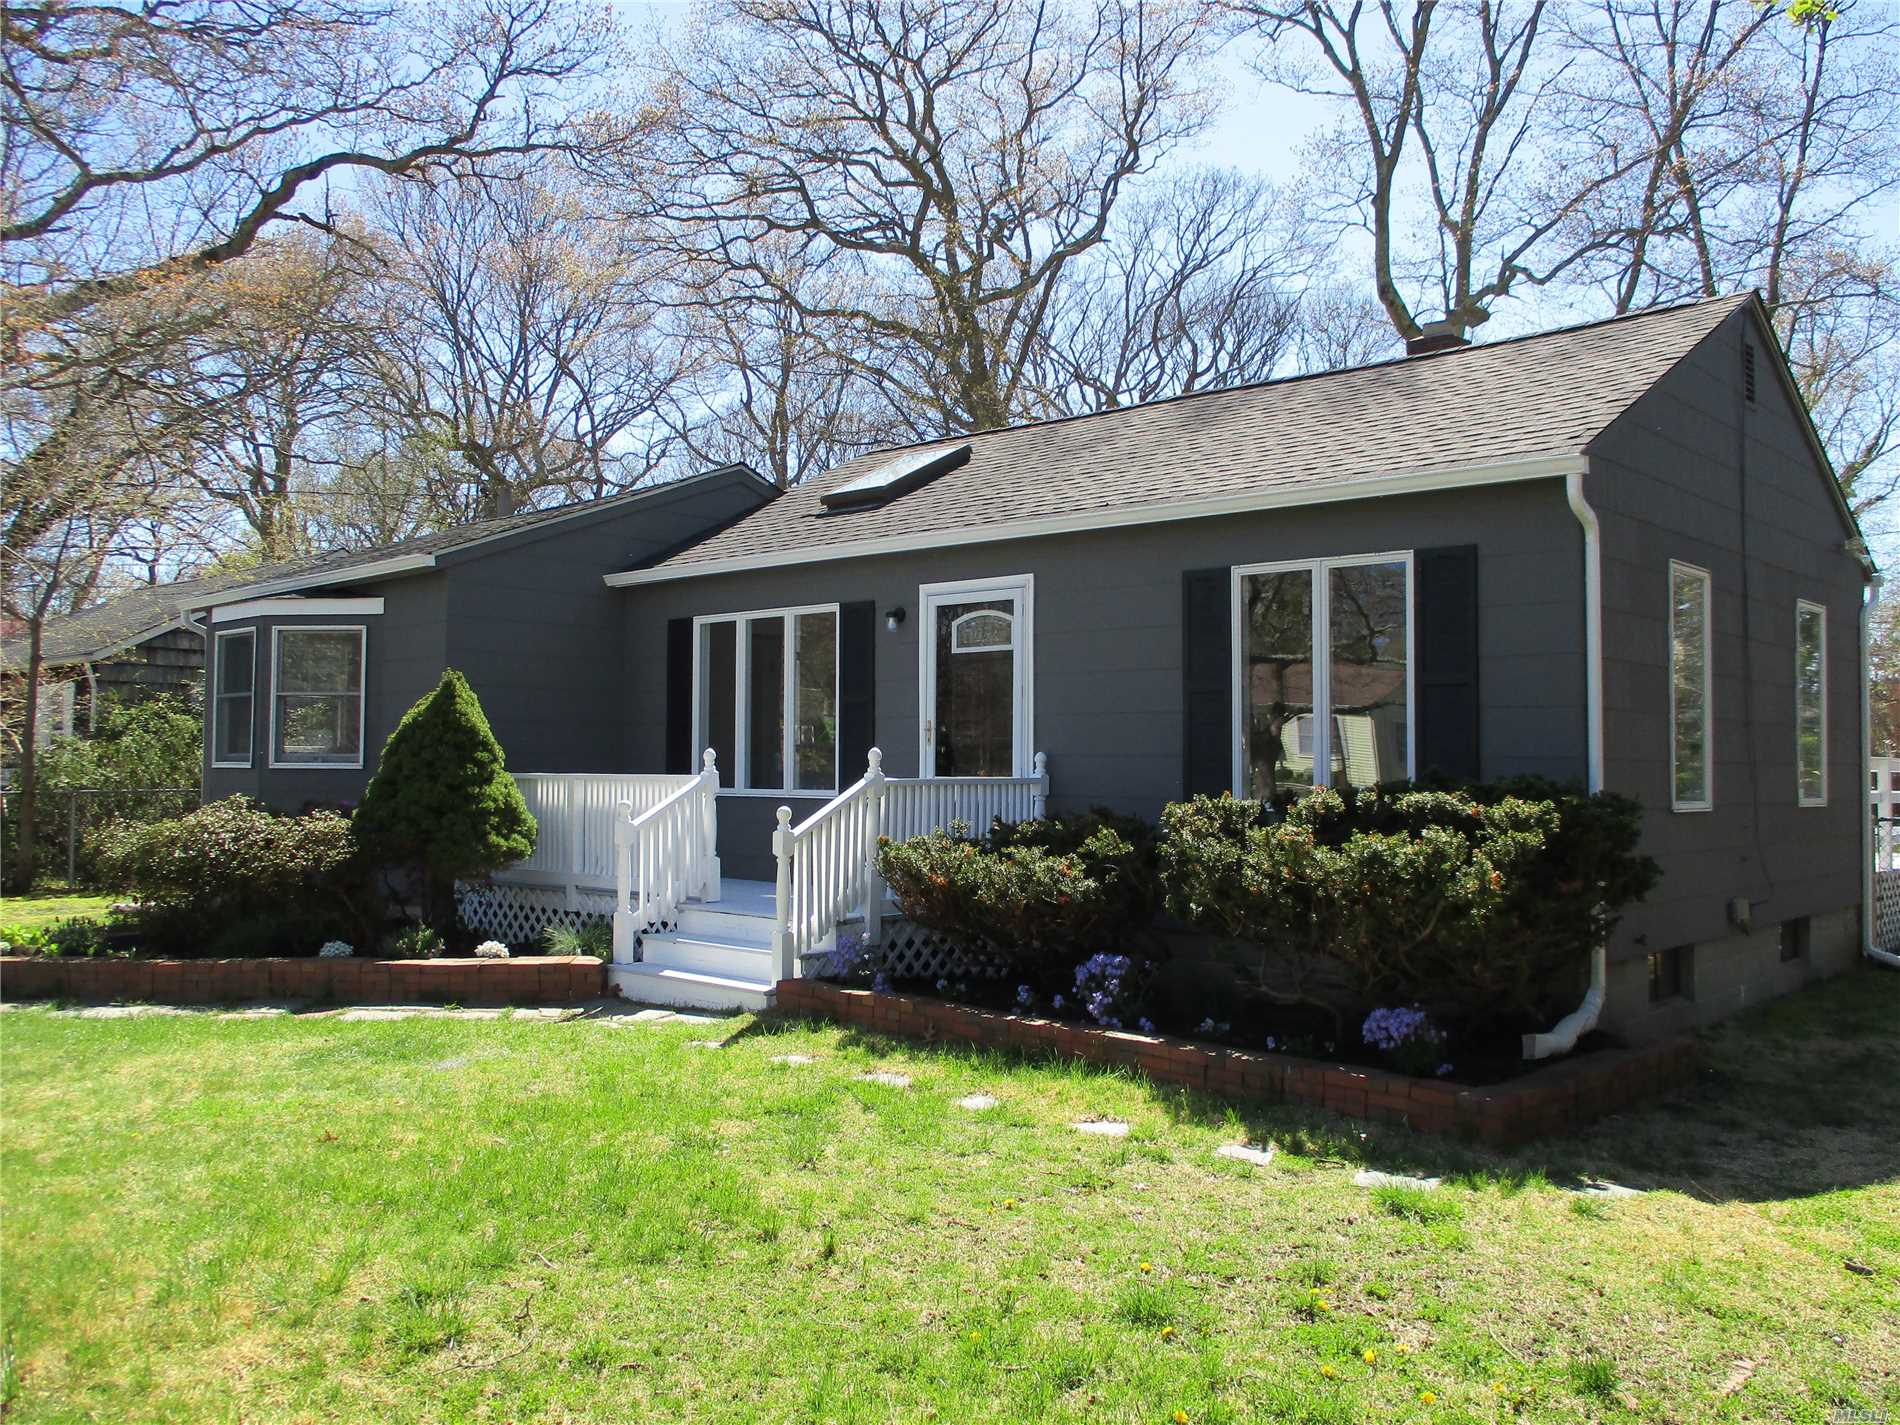 This is a Fannie Mae HomePath Property. Completely renovated adorable 2 bedroom ranch on deep lot in Bellport Village. Sun drenched EIK with new cabinets, counter top, and appliances. LR/DR combo with refinished wood floors and 1 newly renovated full bath. New carpet in bedrooms and new paint though out. Rear deck for entertaining. Full unfinished basement. Village amenities include private bay beach, marina, golf course, tennis and ferry to ocean beach.